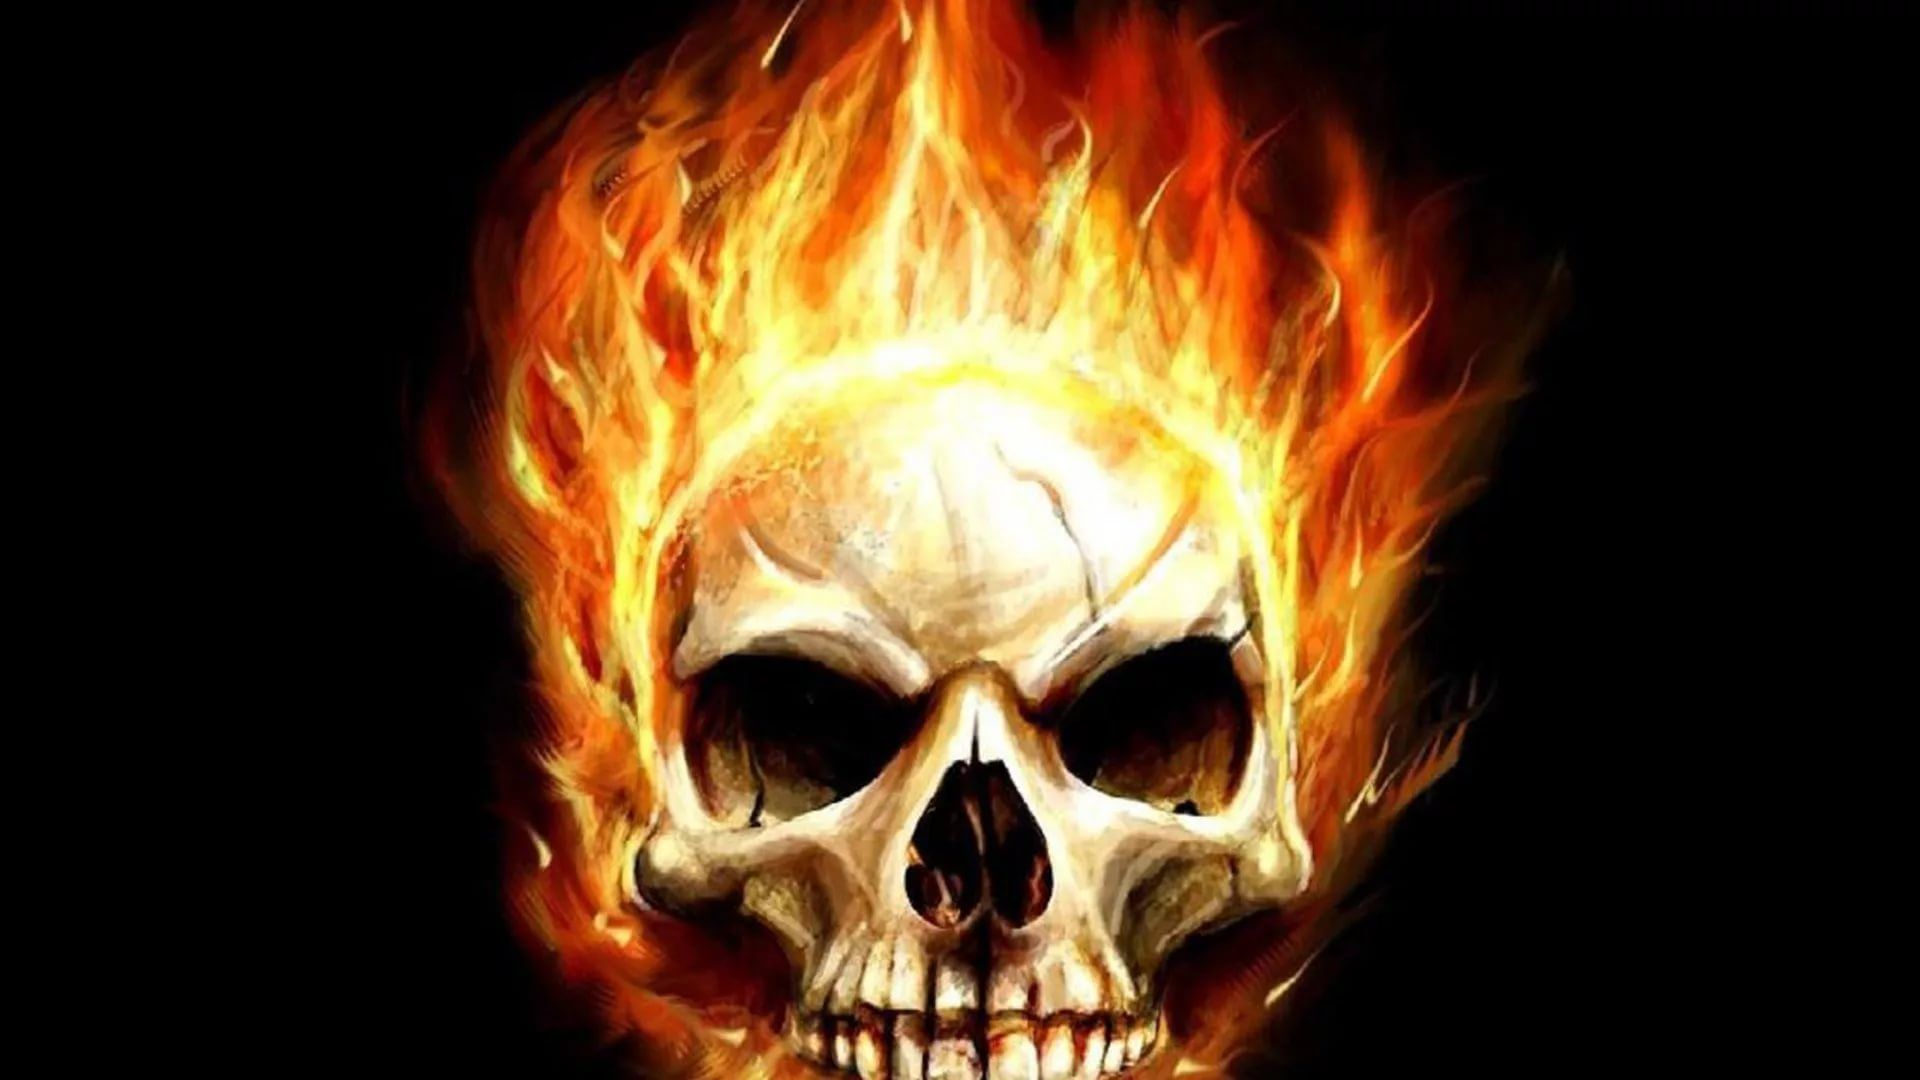 Flaming Skull High Quality